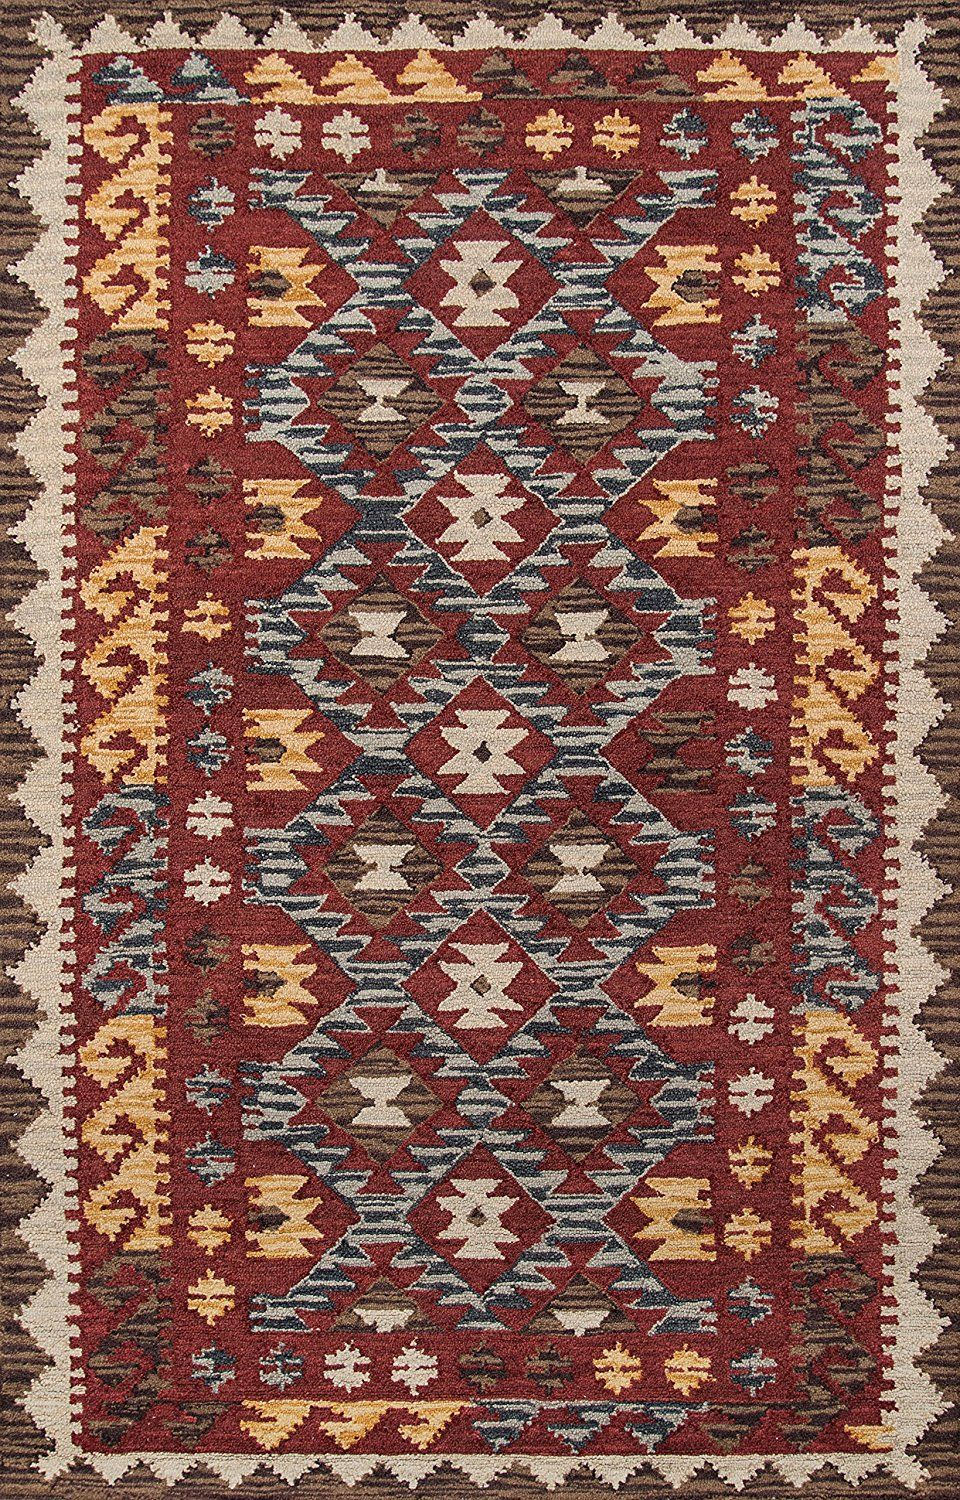 Momeni Rugs Tangitan 7red3656 Tangier Collection 100 Wool Hand Tufted Tip Sheared Transitional